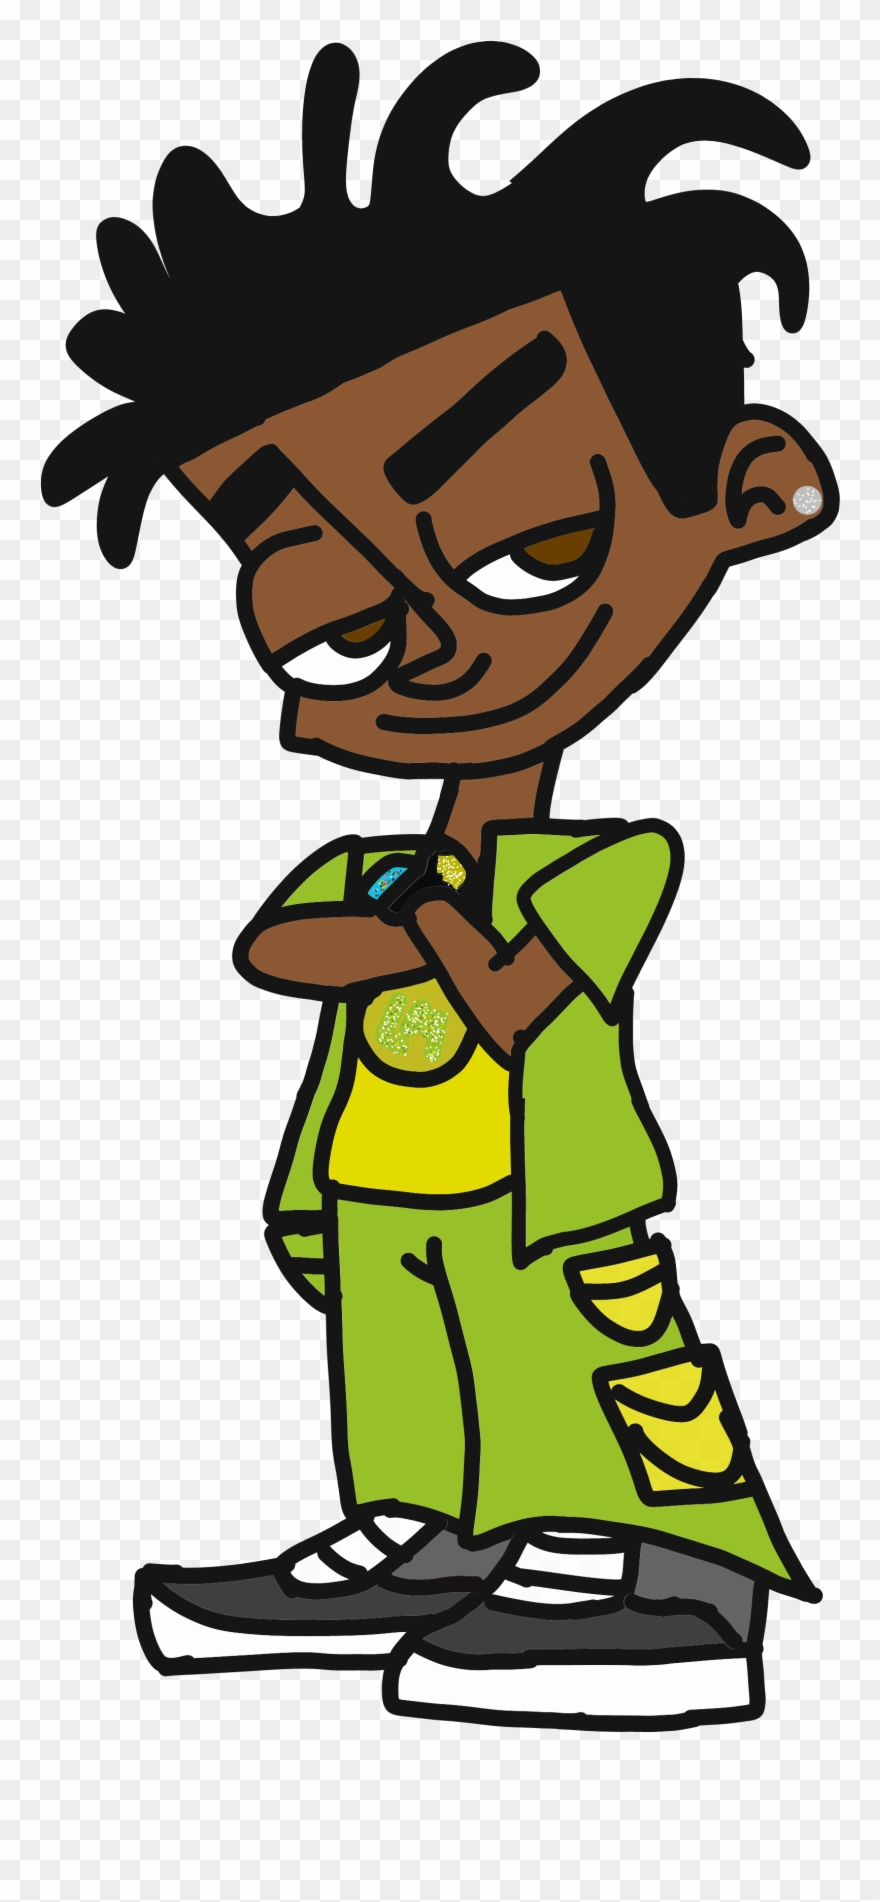 Johnny test characters pinclipart. Drivers license clipart cartoon character